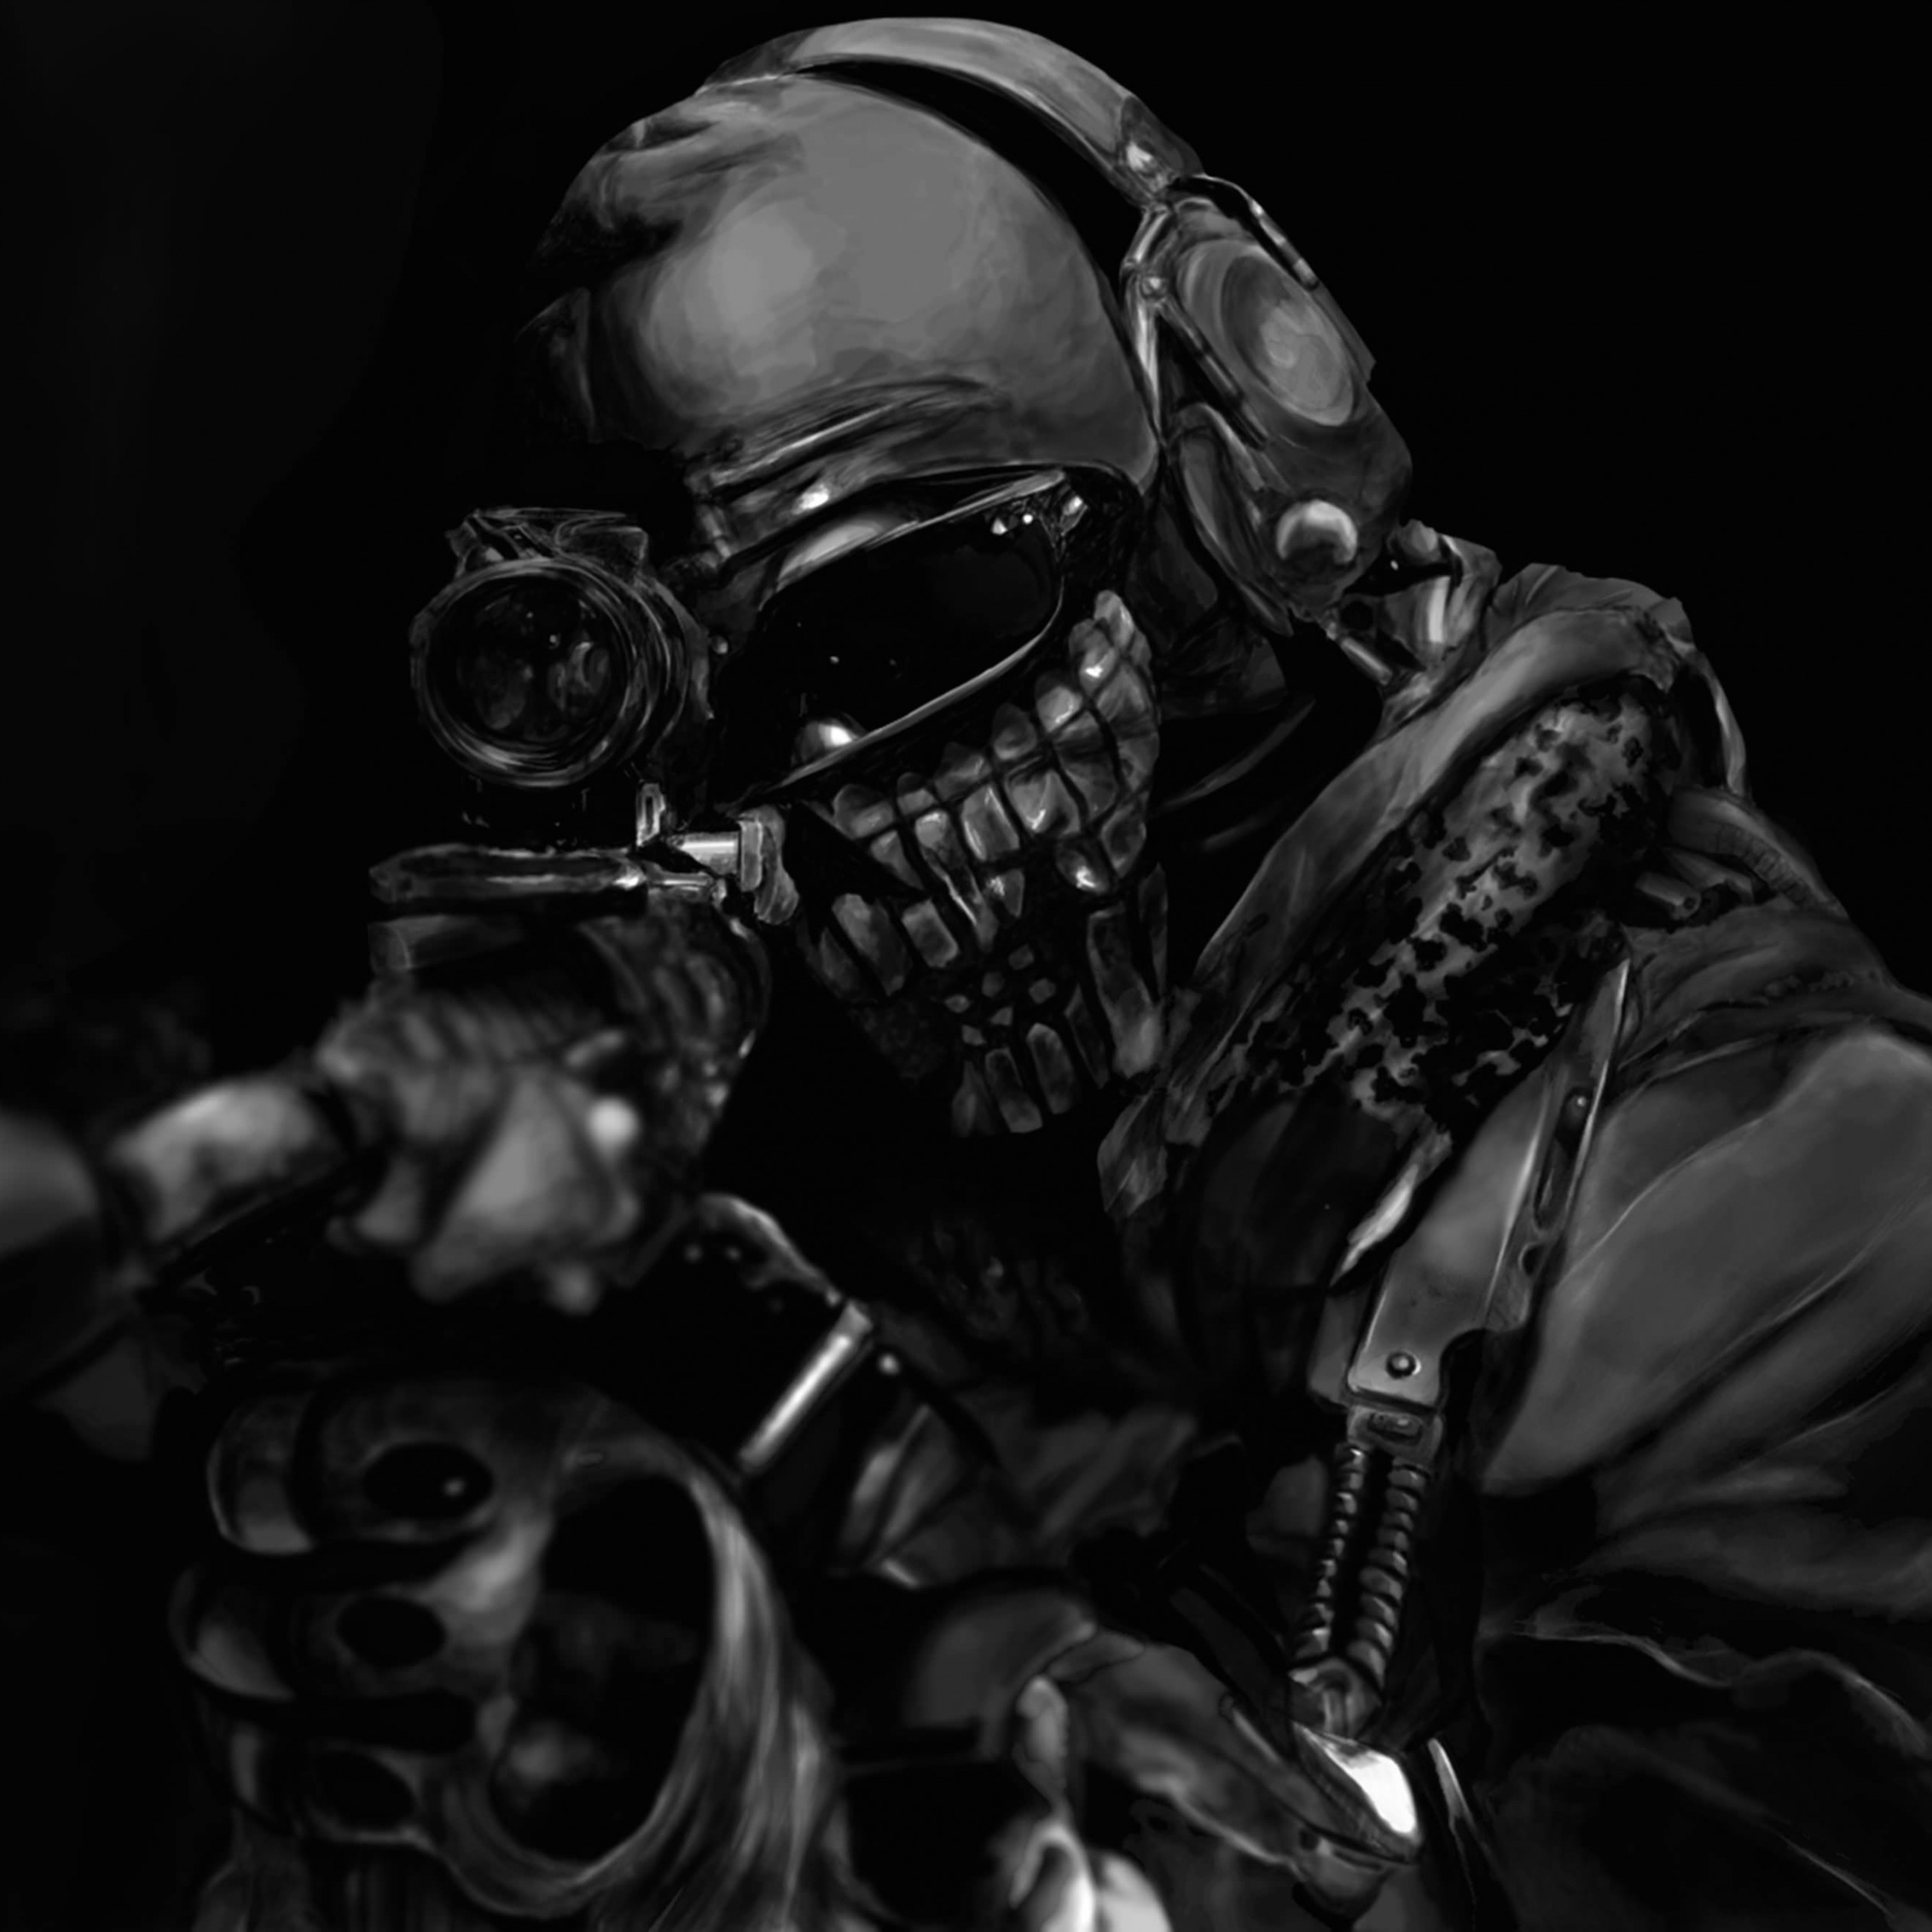 Call of Duty Ghost Masked Warrior Wallpaper for Apple iPad Air